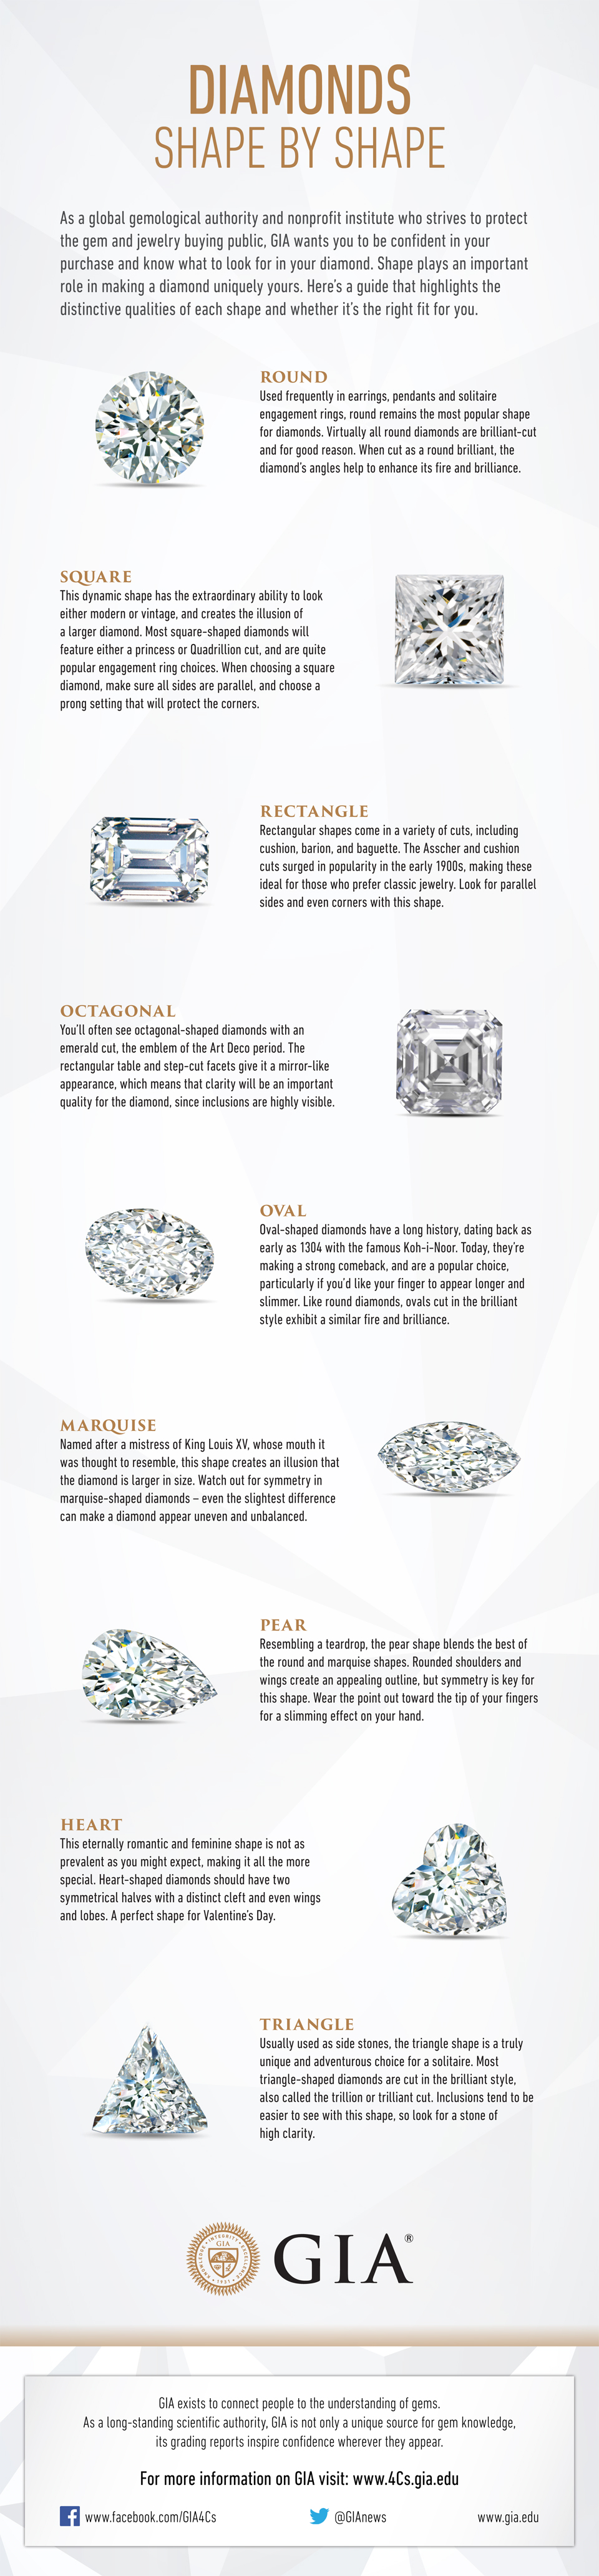 unique choosing women finger the your beauty topics by engagement shape rings right jewelry article choose diamond blooming for